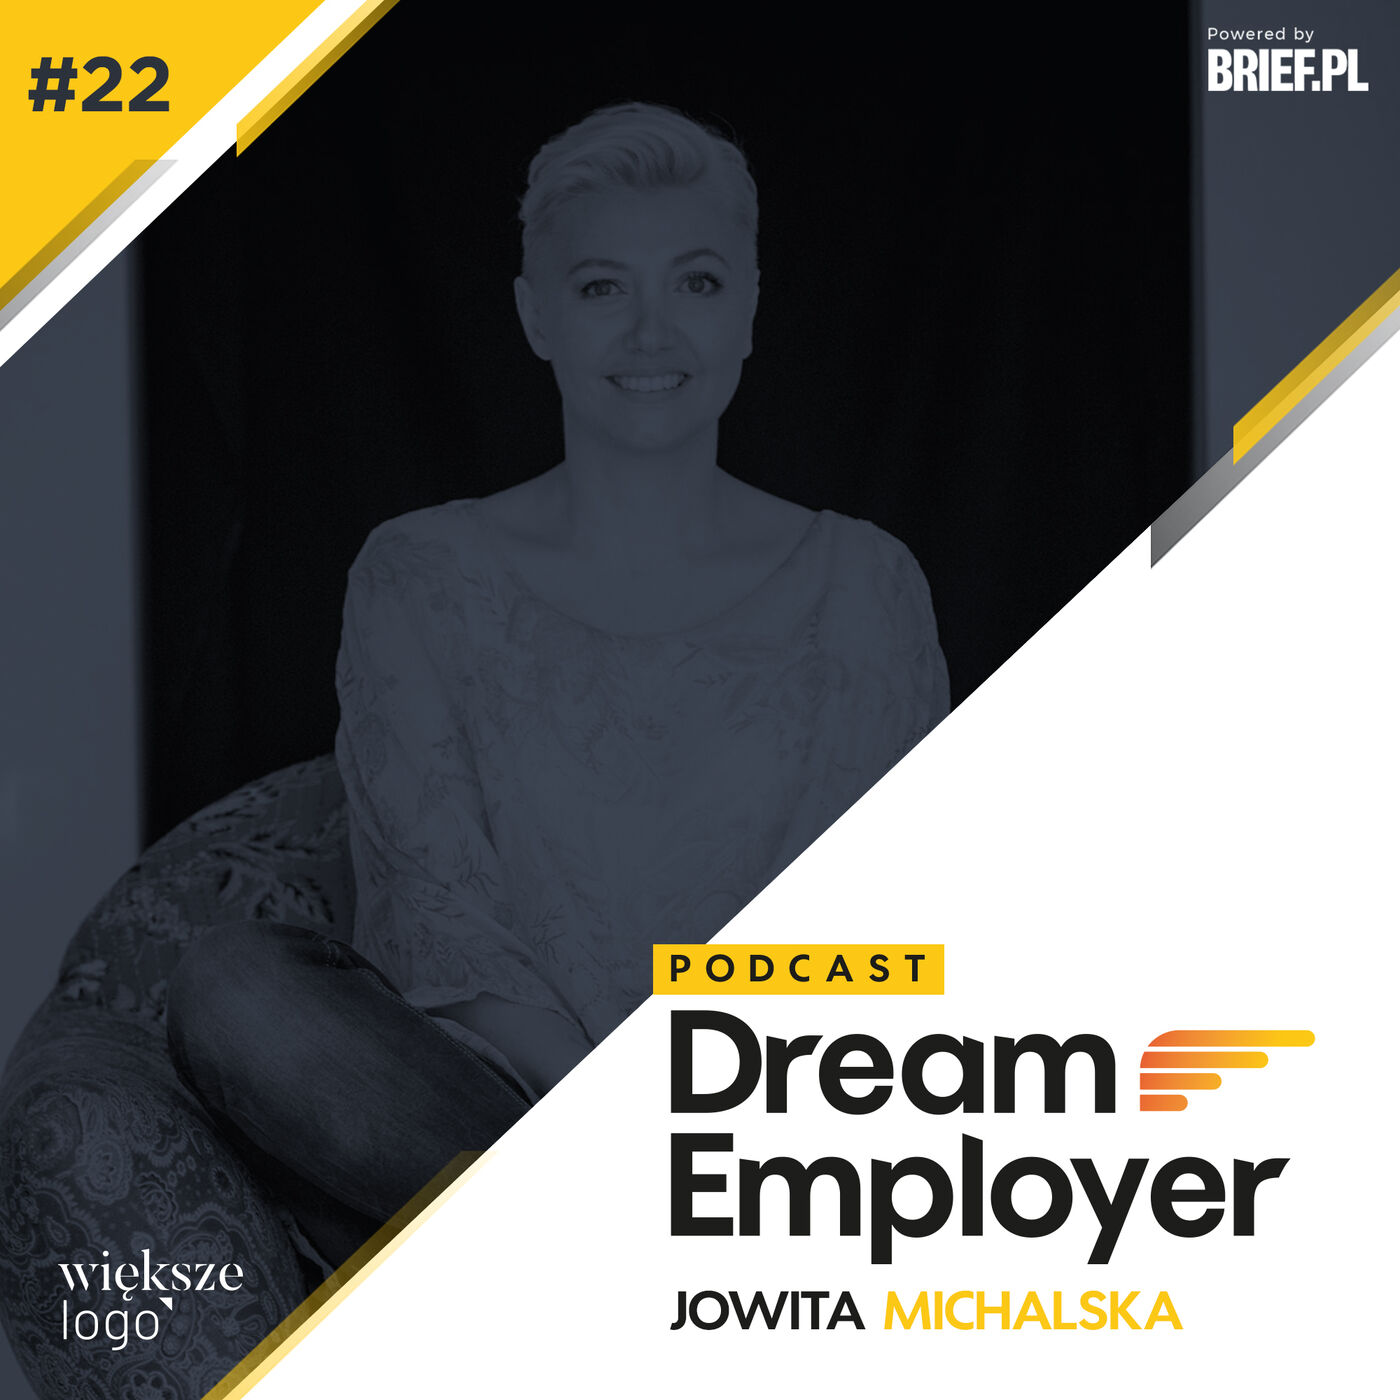 EP #22 - Jowita Michalska, Digital University